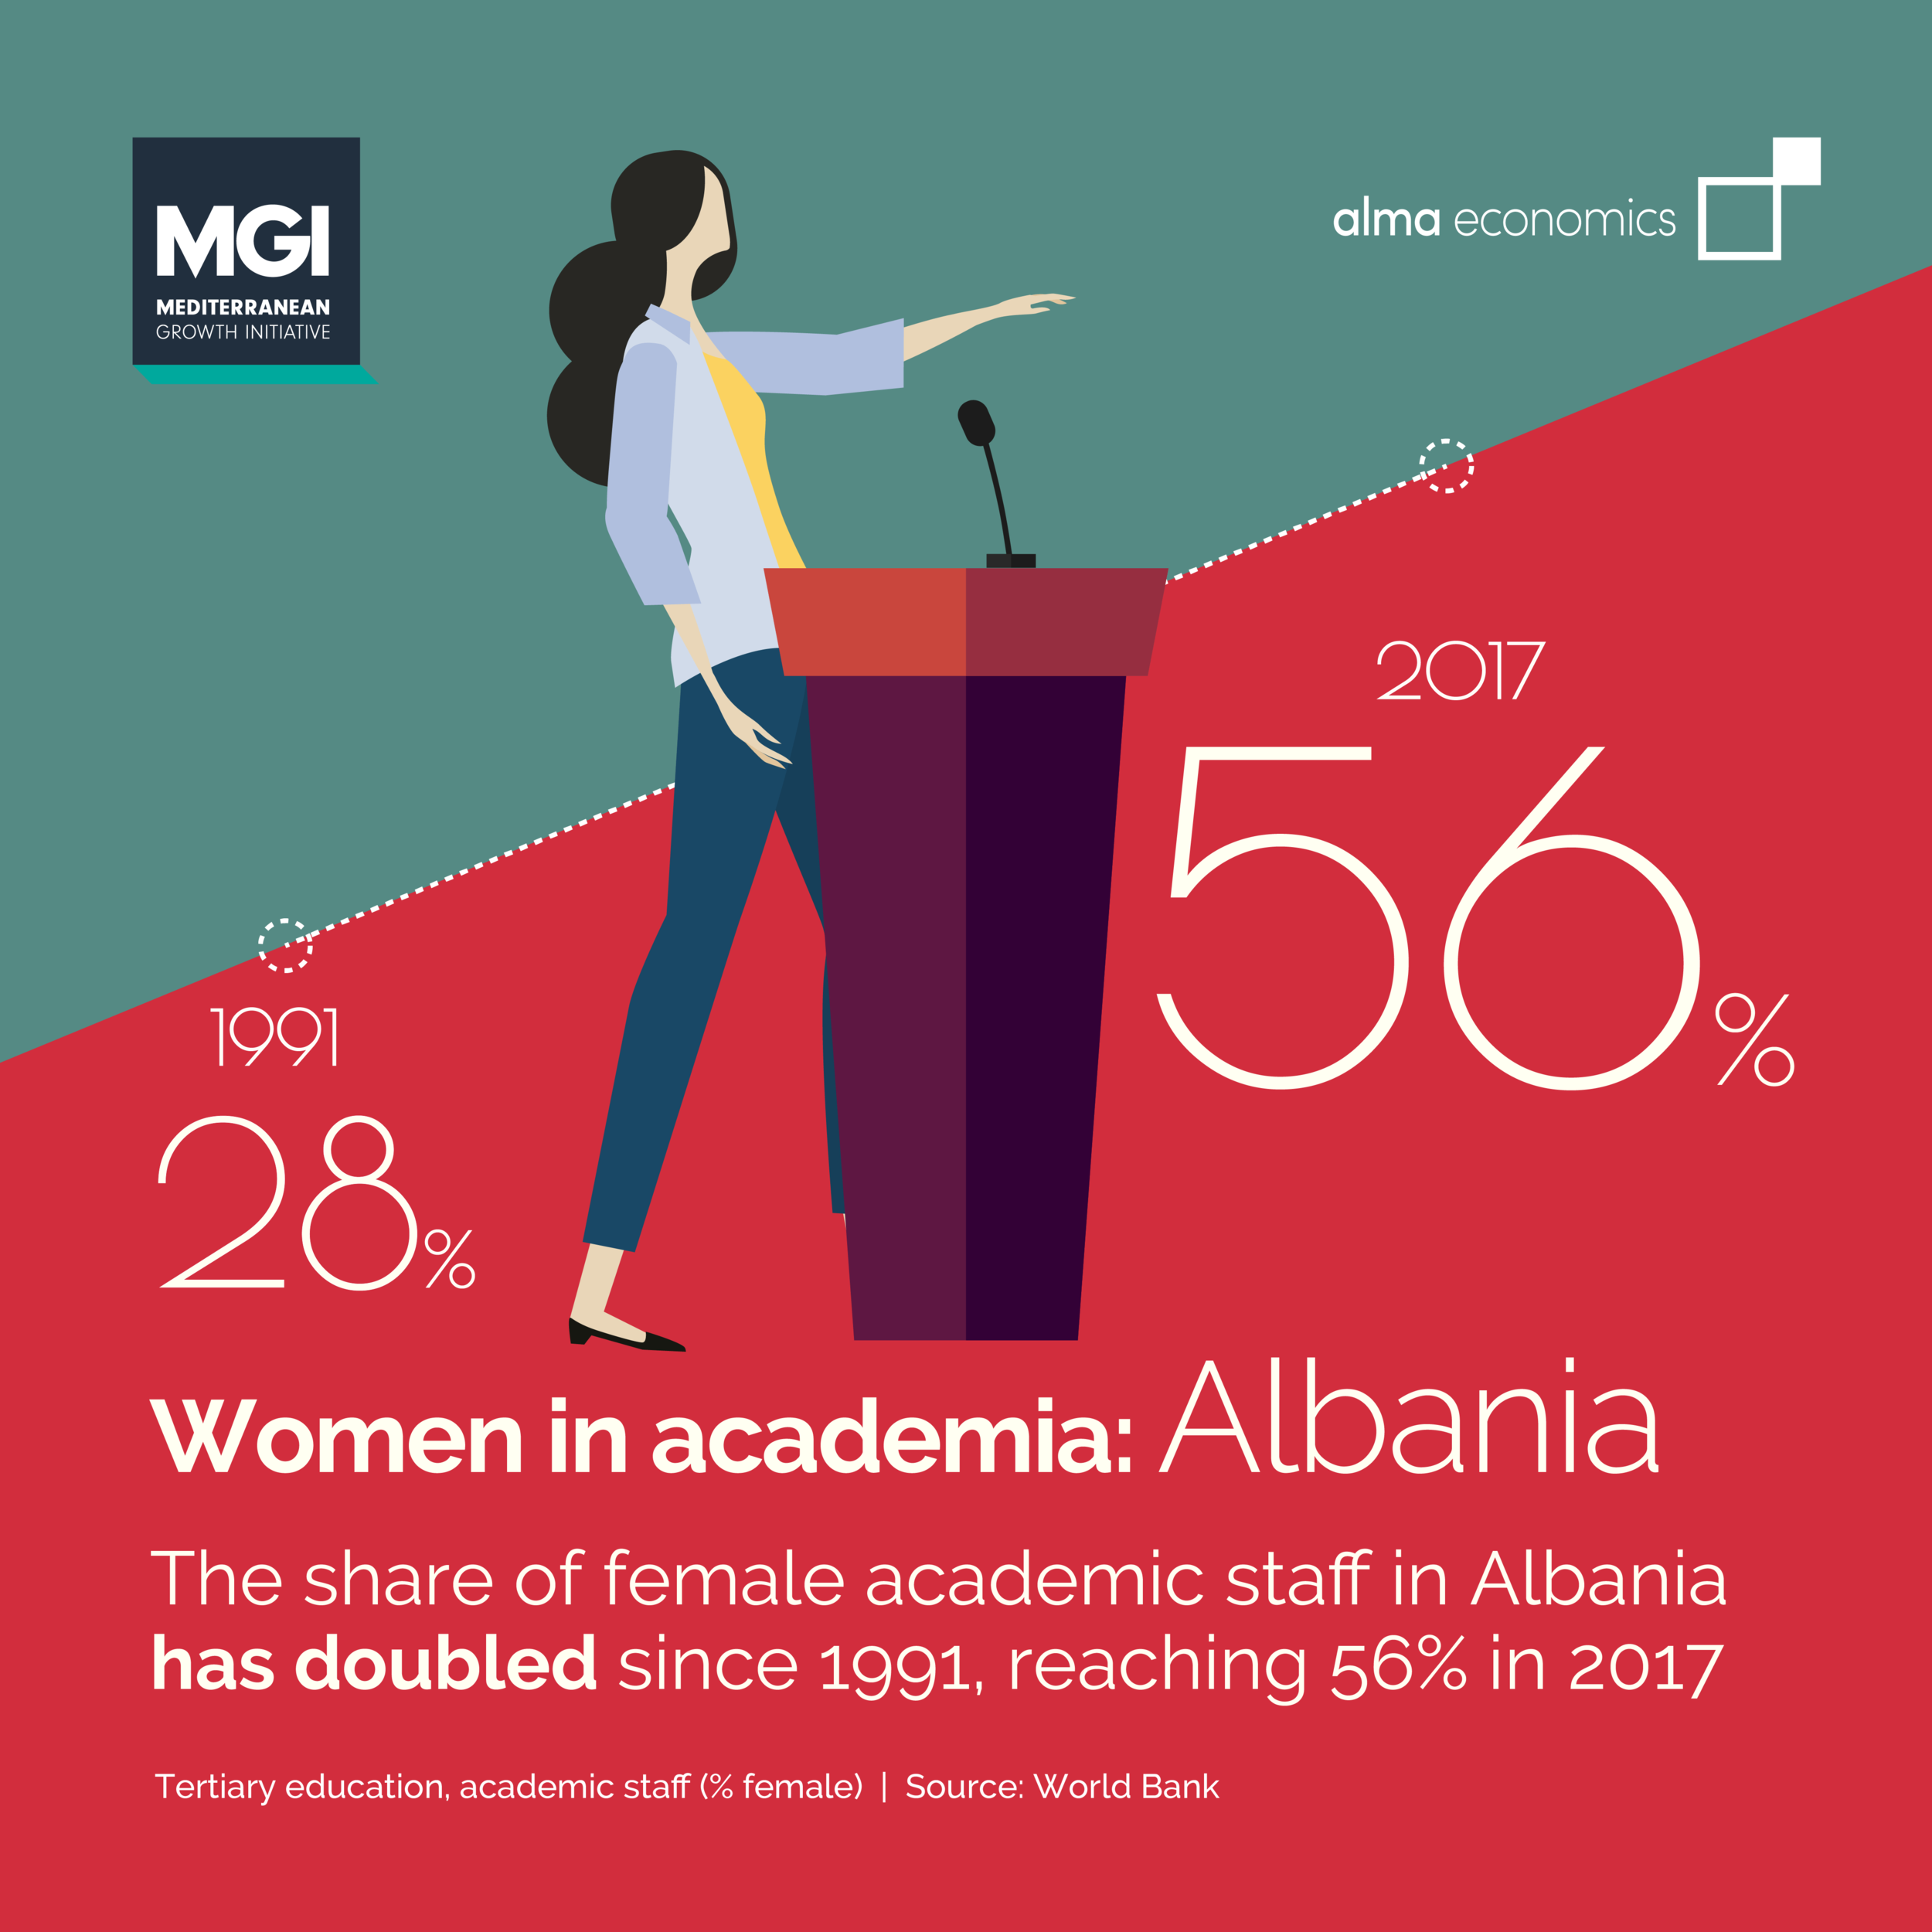 Women in academia: Albania - In Albania, the share of female academic staff in tertiary education has doubled since 1991, reaching 56% in 2017 – the highest value amongst the Mediterranean countries